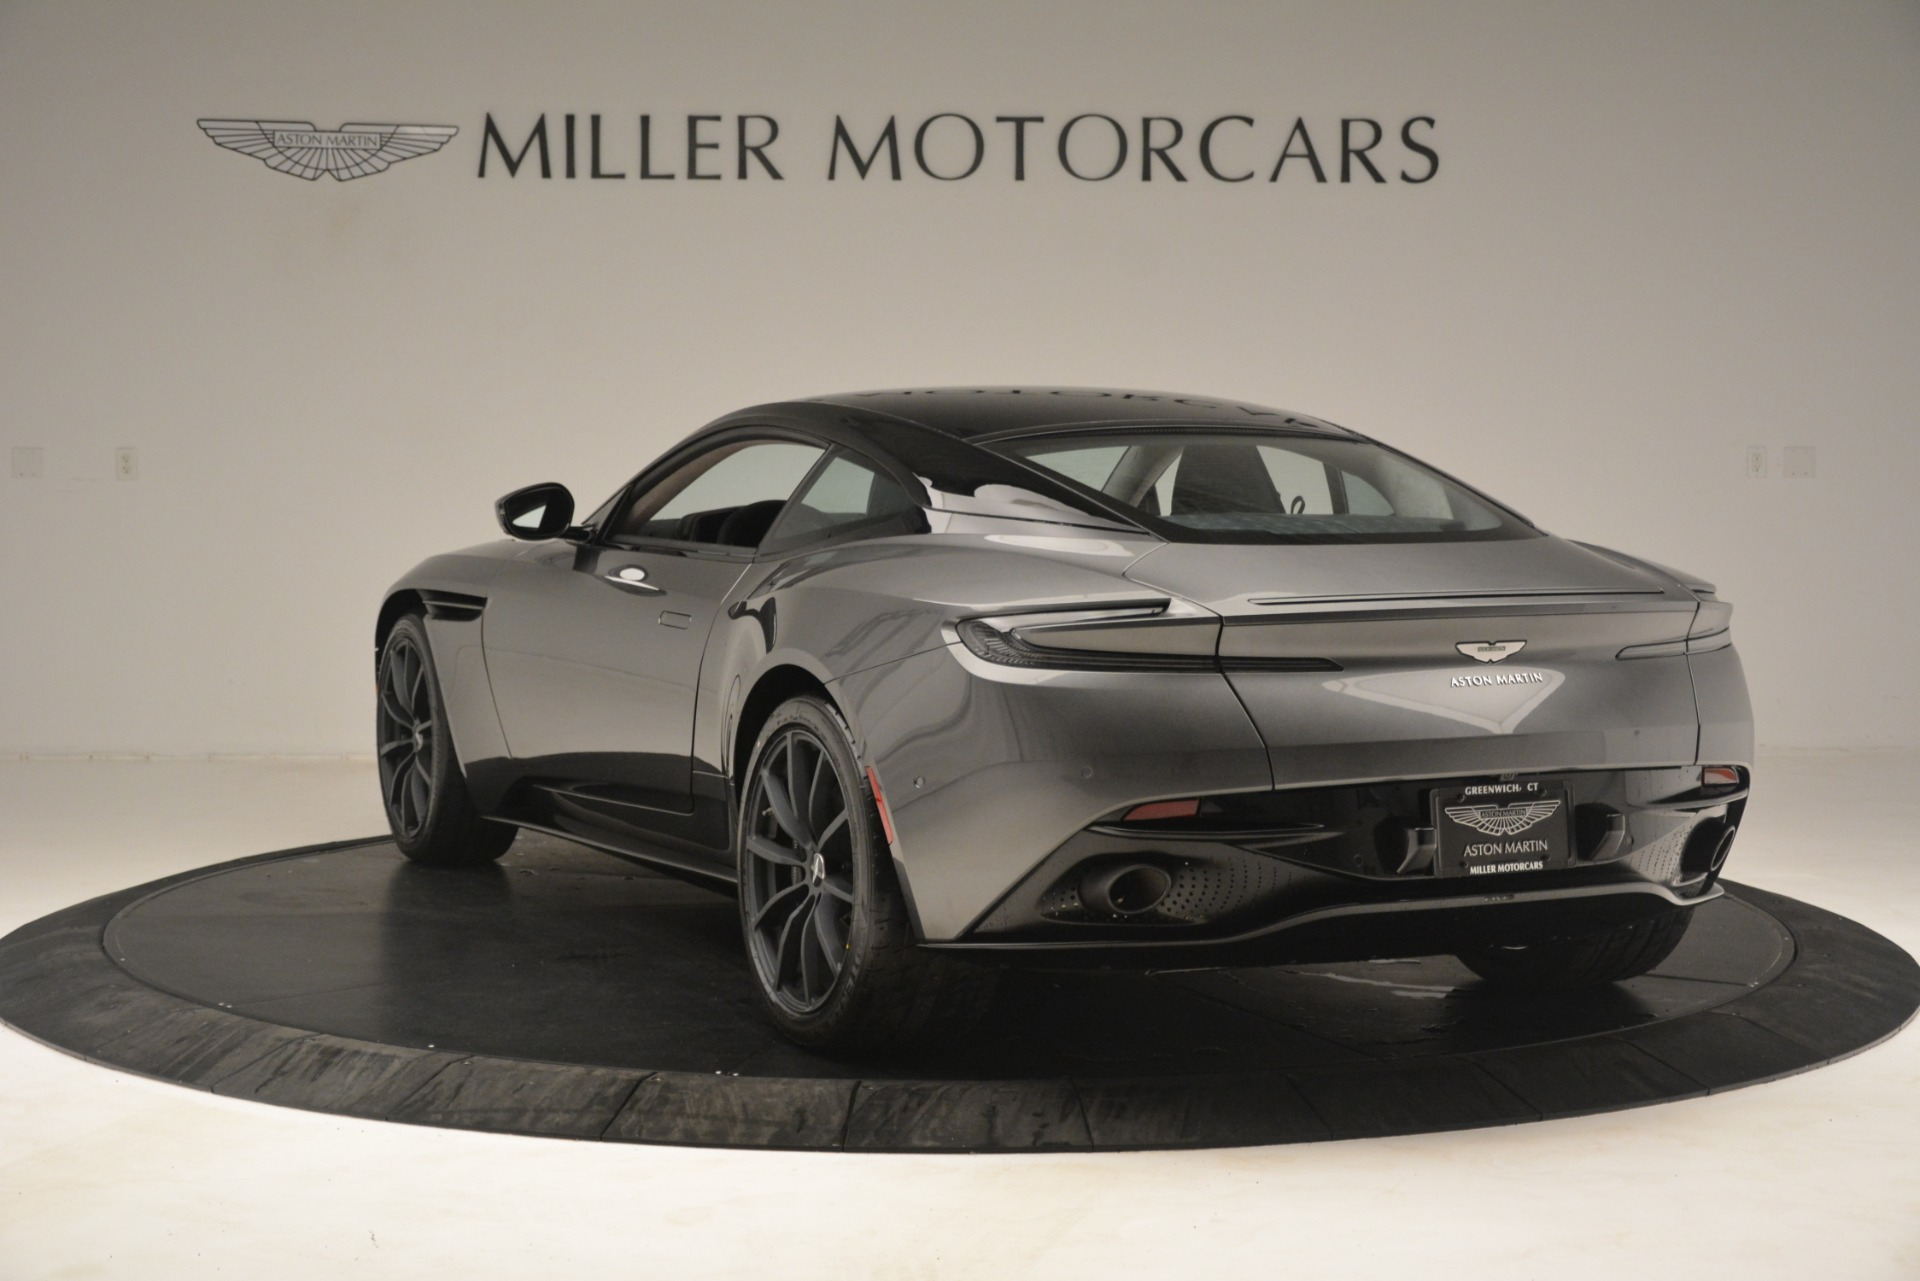 New 2019 Aston Martin DB11 V12 AMR Coupe For Sale In Greenwich, CT. Alfa Romeo of Greenwich, A1366 3123_p5